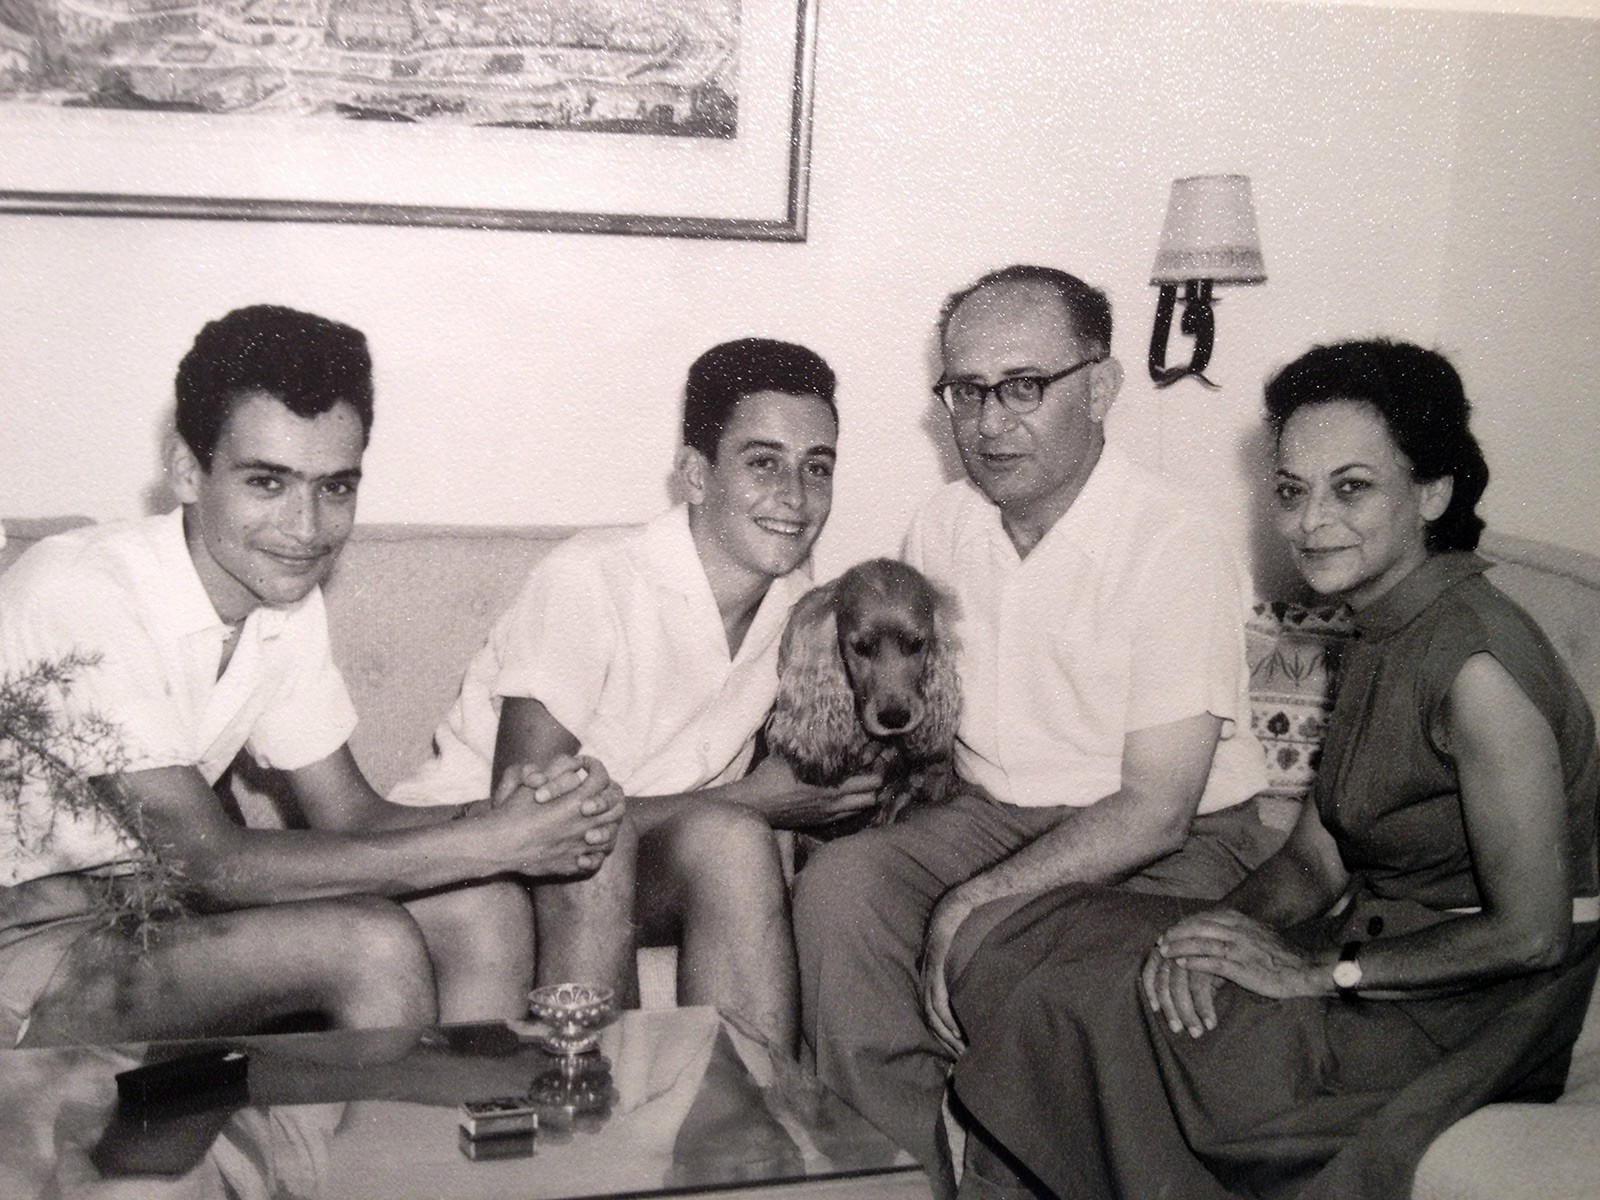 The Yahil family around 1960: Amos, Jonathan, Chaim, and Leni © Private collection.